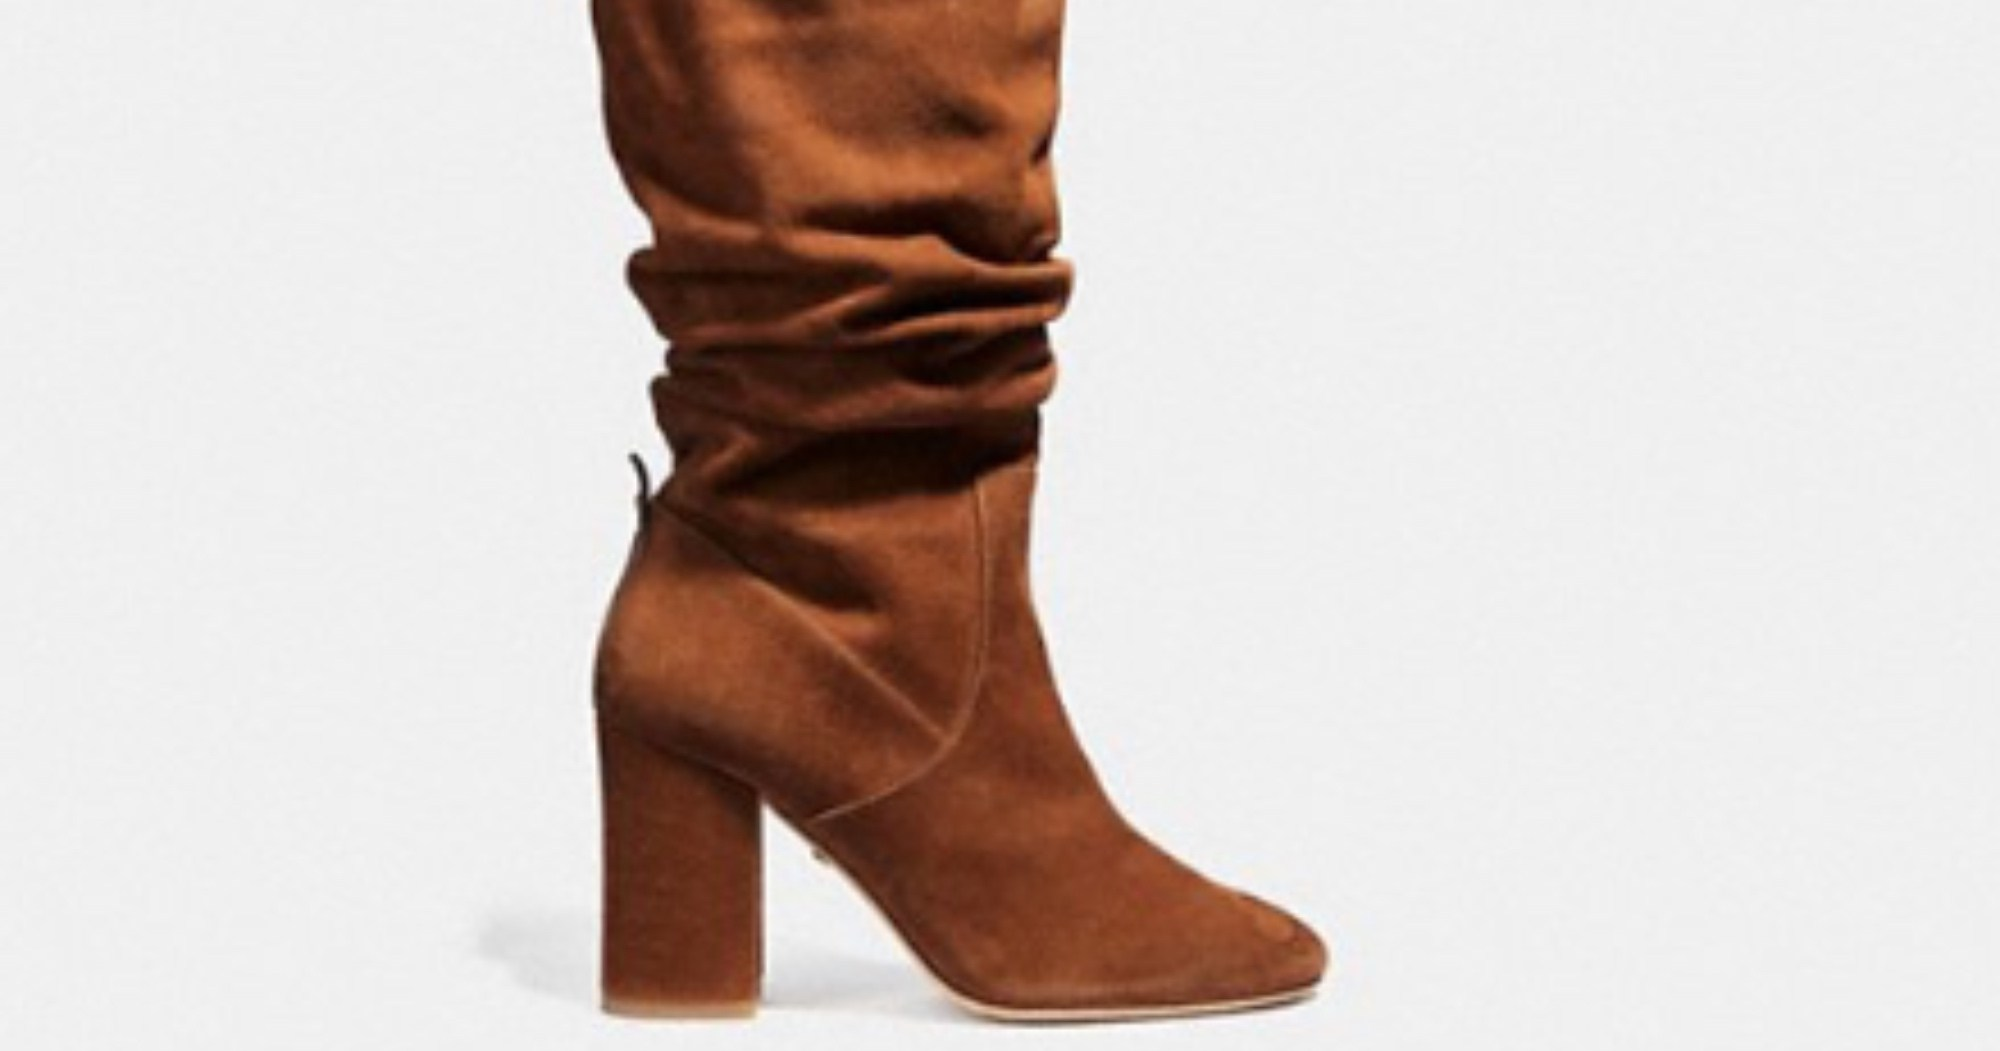 These Stylish Boots are Now 50% Off in the Coach Sale